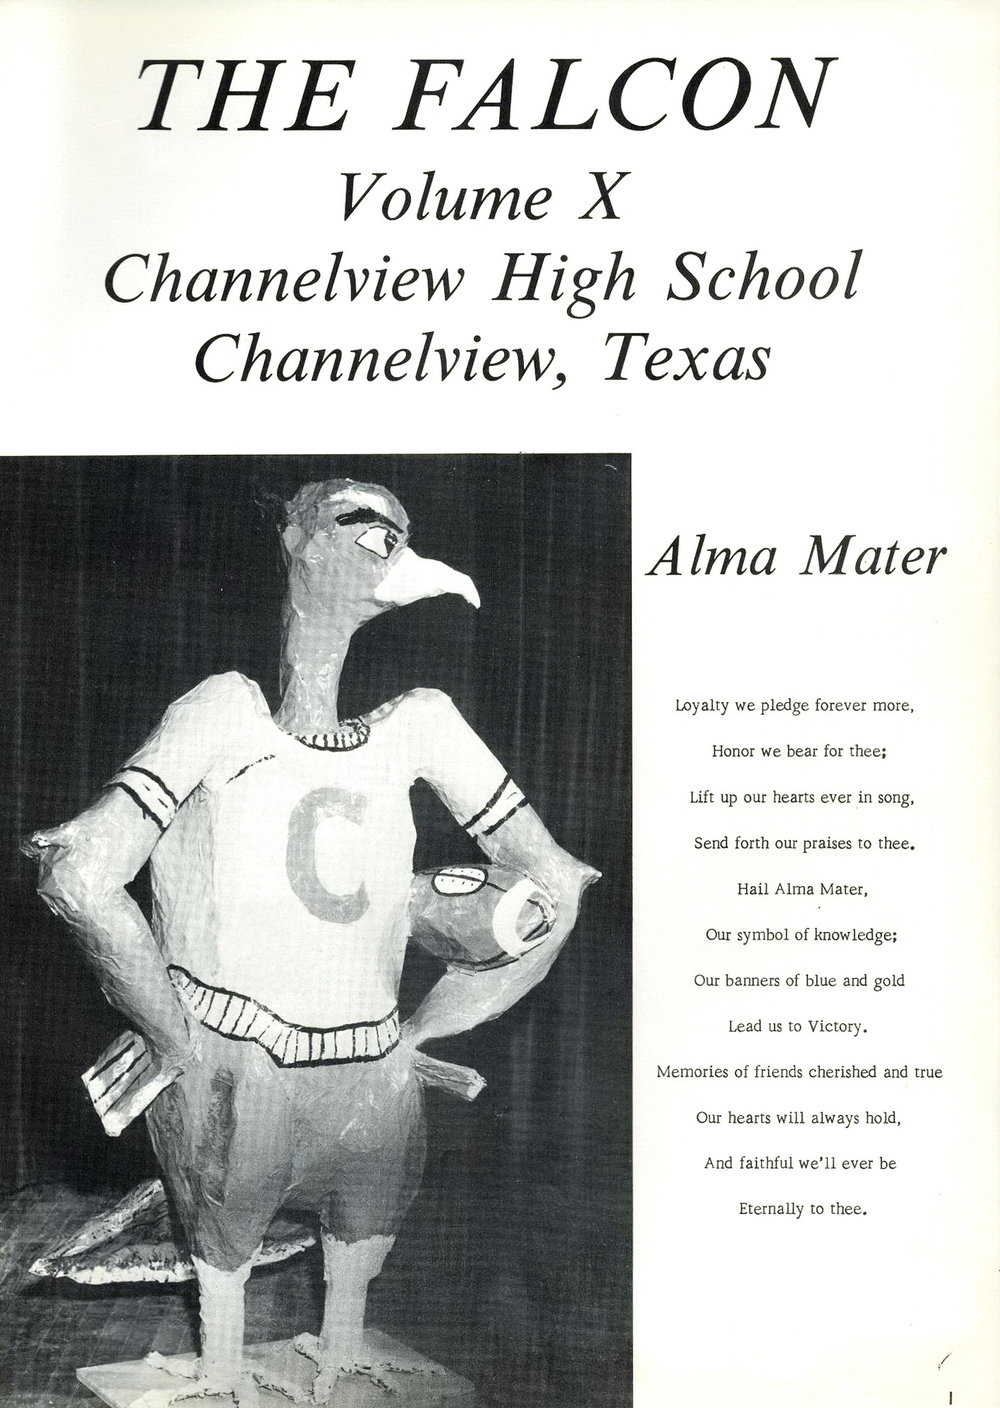 Bob McNeil - 1967 - Age 18 - Twelfth Grade - Channelview High School - School Mascot - Freddy Falcon